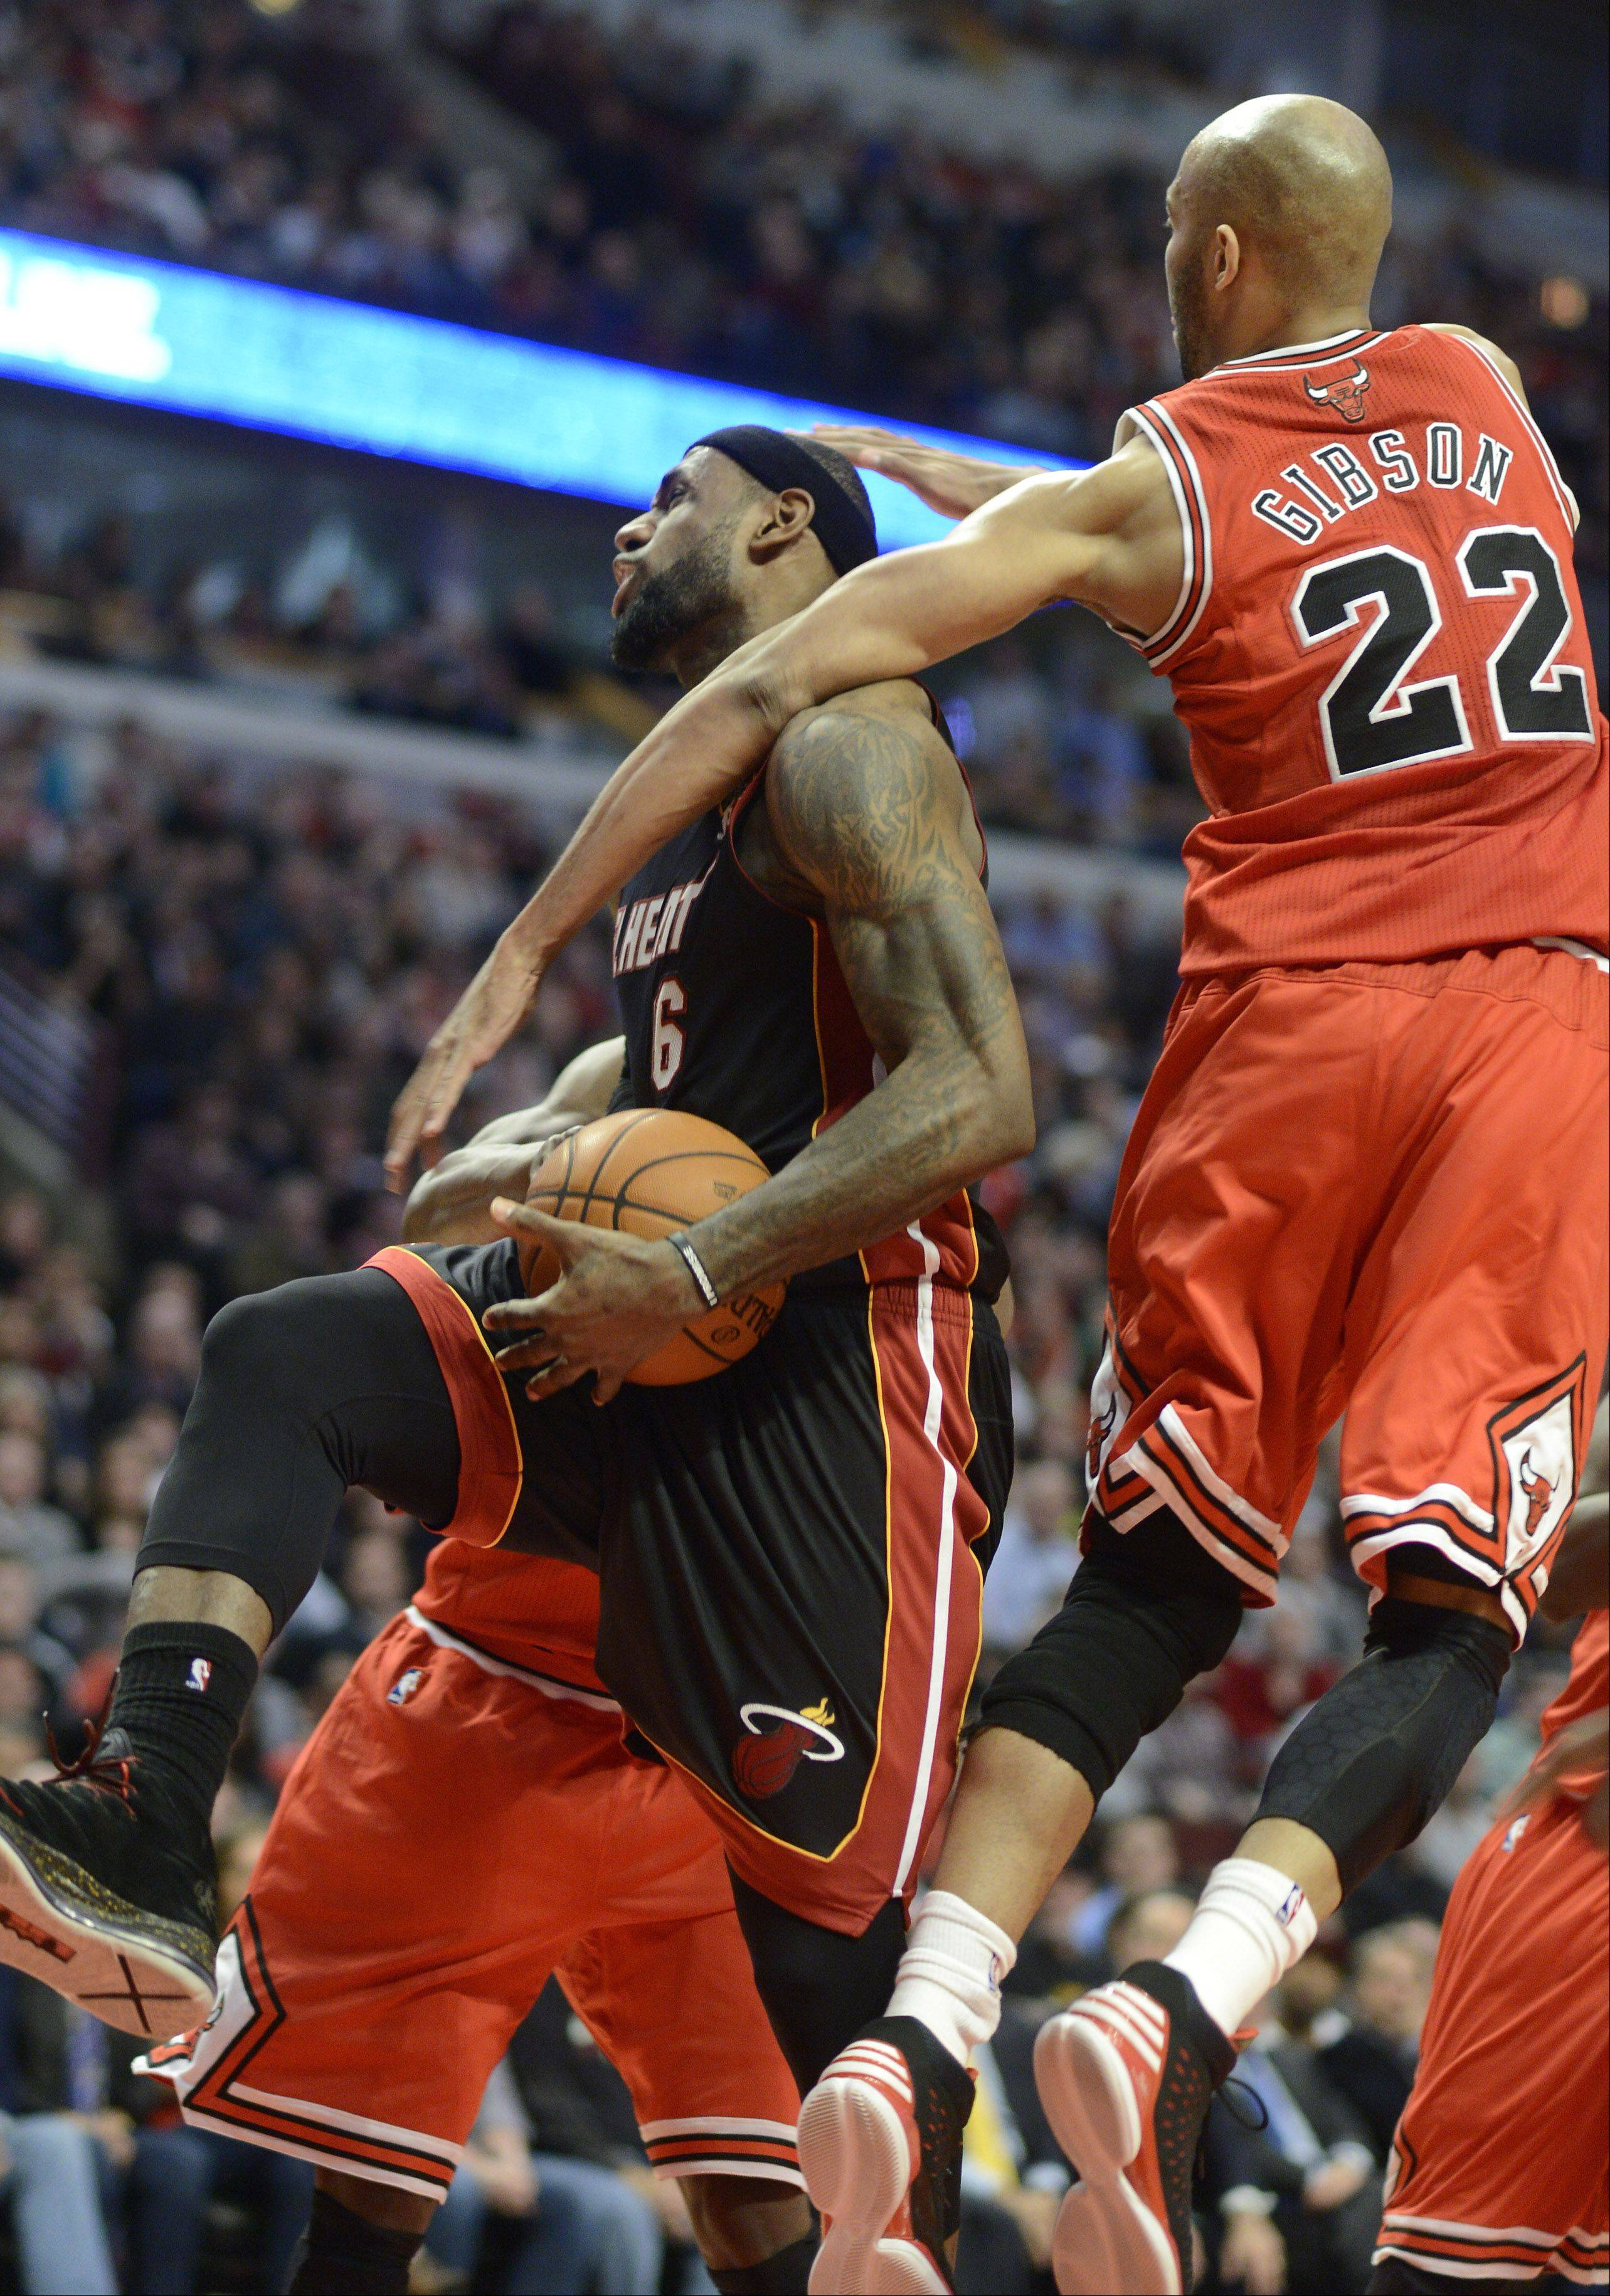 Bulls' get-tough strategy vs. Heat worked